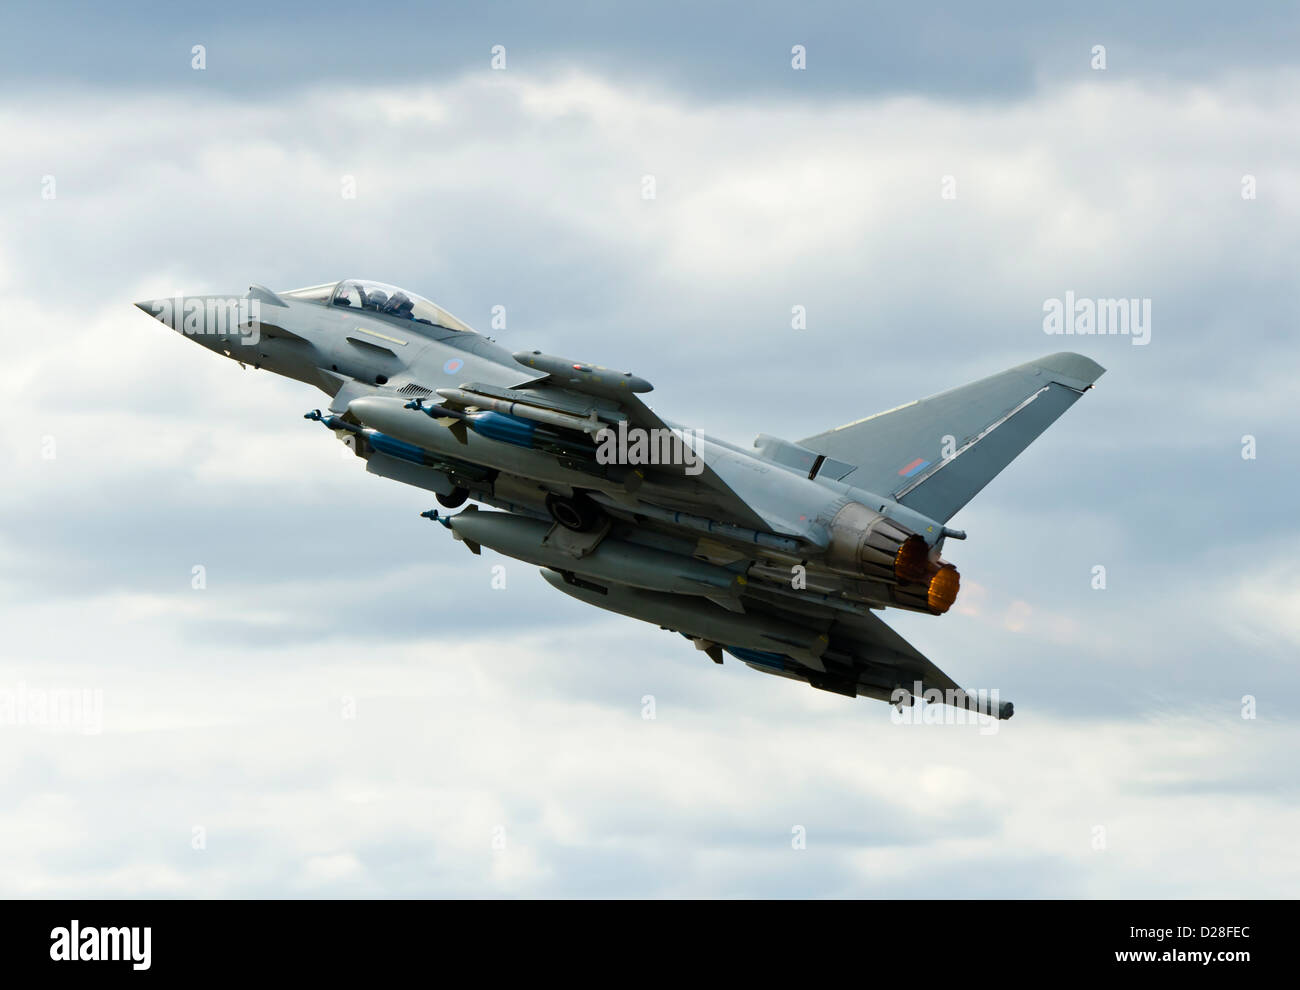 Typhoon jet fighter - Stock Image